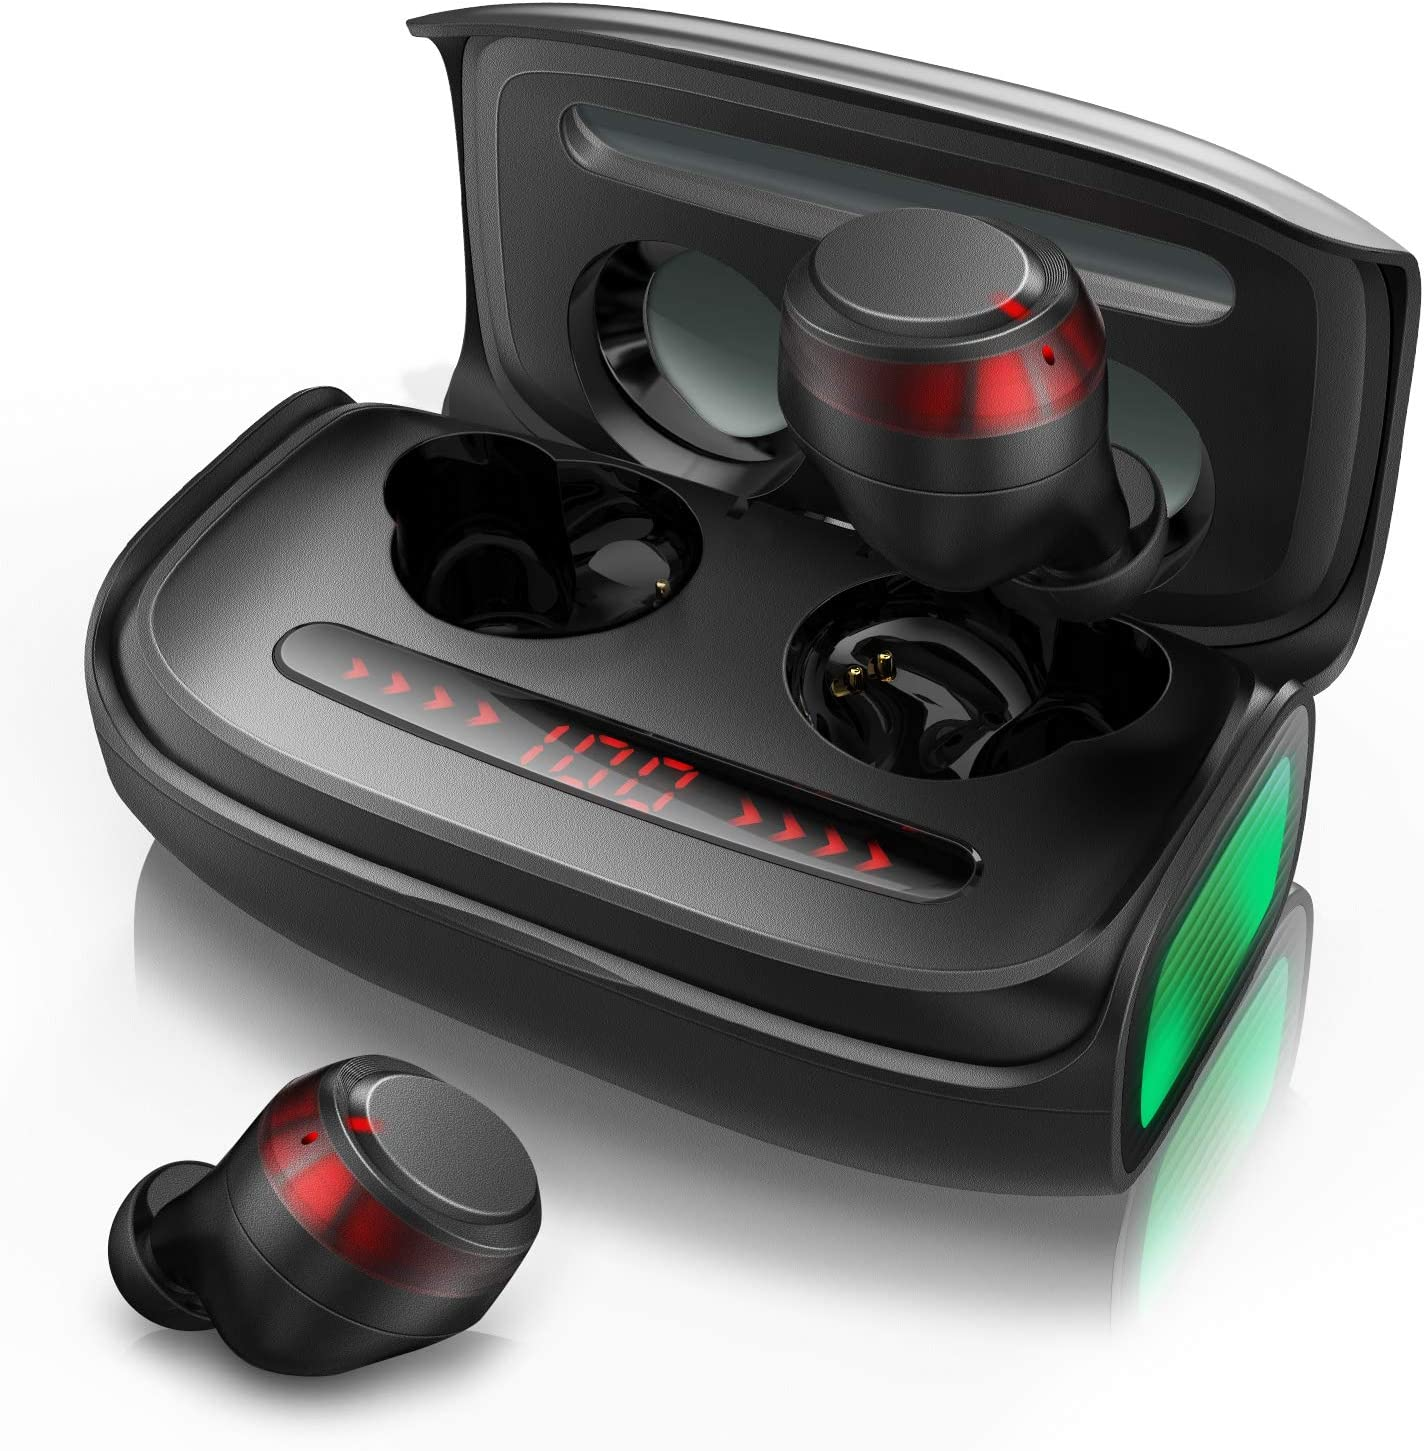 Bluetooth Wireless Earbuds, Votomy Qualcomm QCC3020 Bluetooth Headphones in-Ear with 2 Mics CVC 8.0 Call Noise Reduction, 150H Playtime, IPX7 Waterproof, LED Display, Touch Control and Type-C